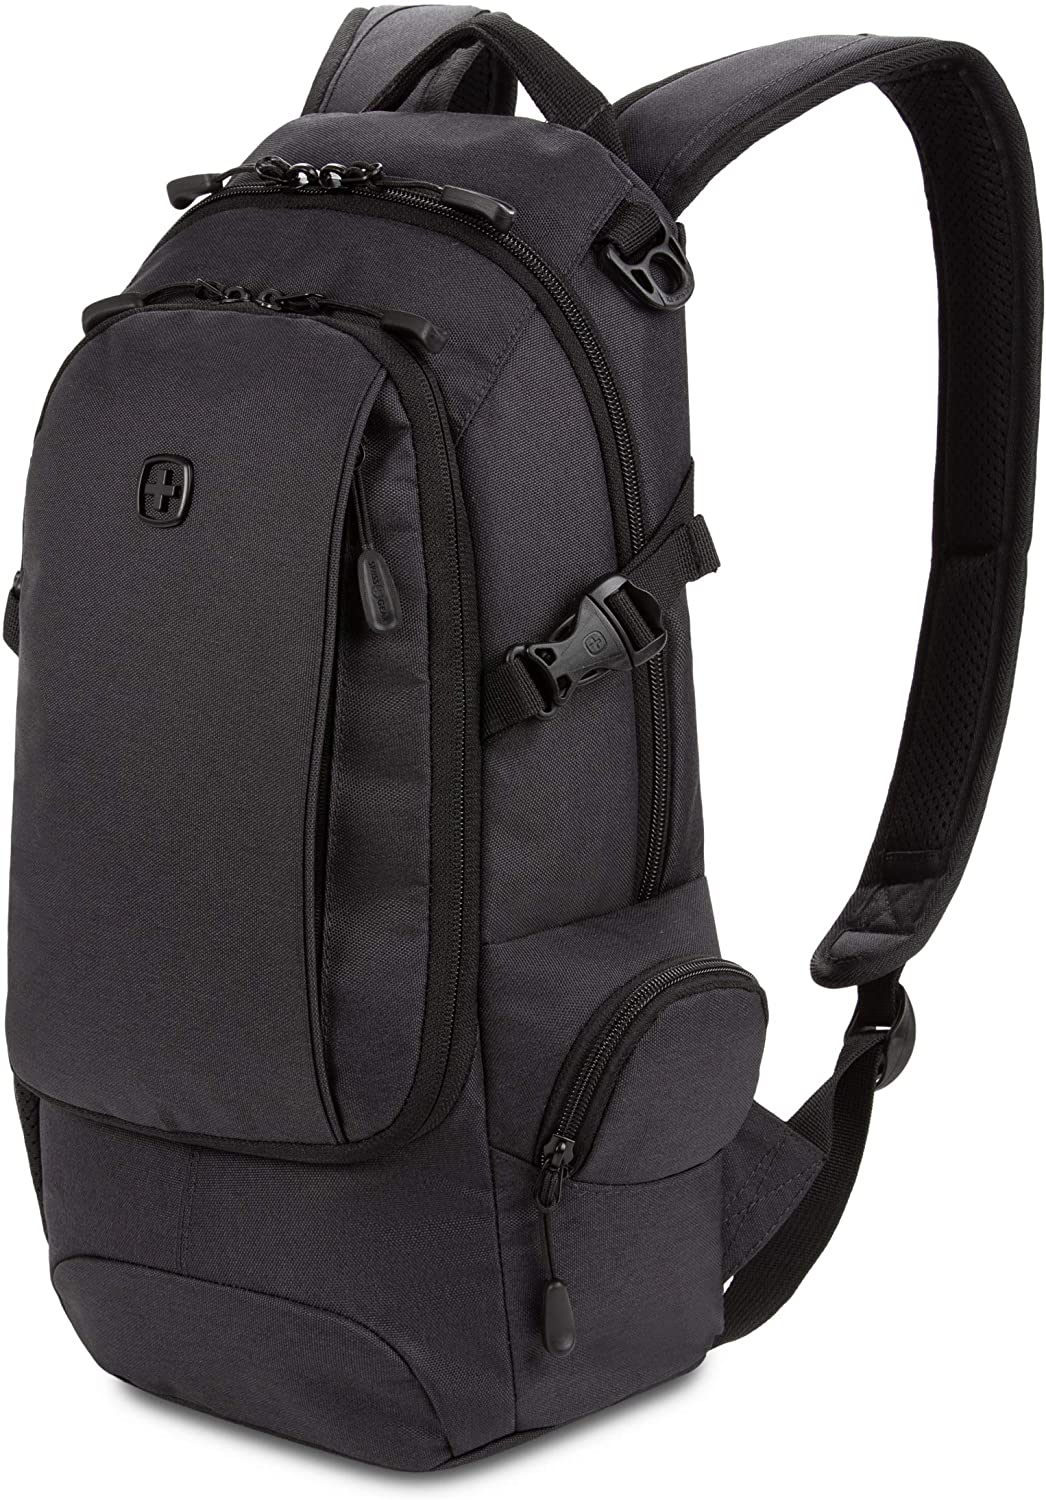 SWISSGEAR 3598 Backpack | Narrow Daypack | Ideal for Commuting and School